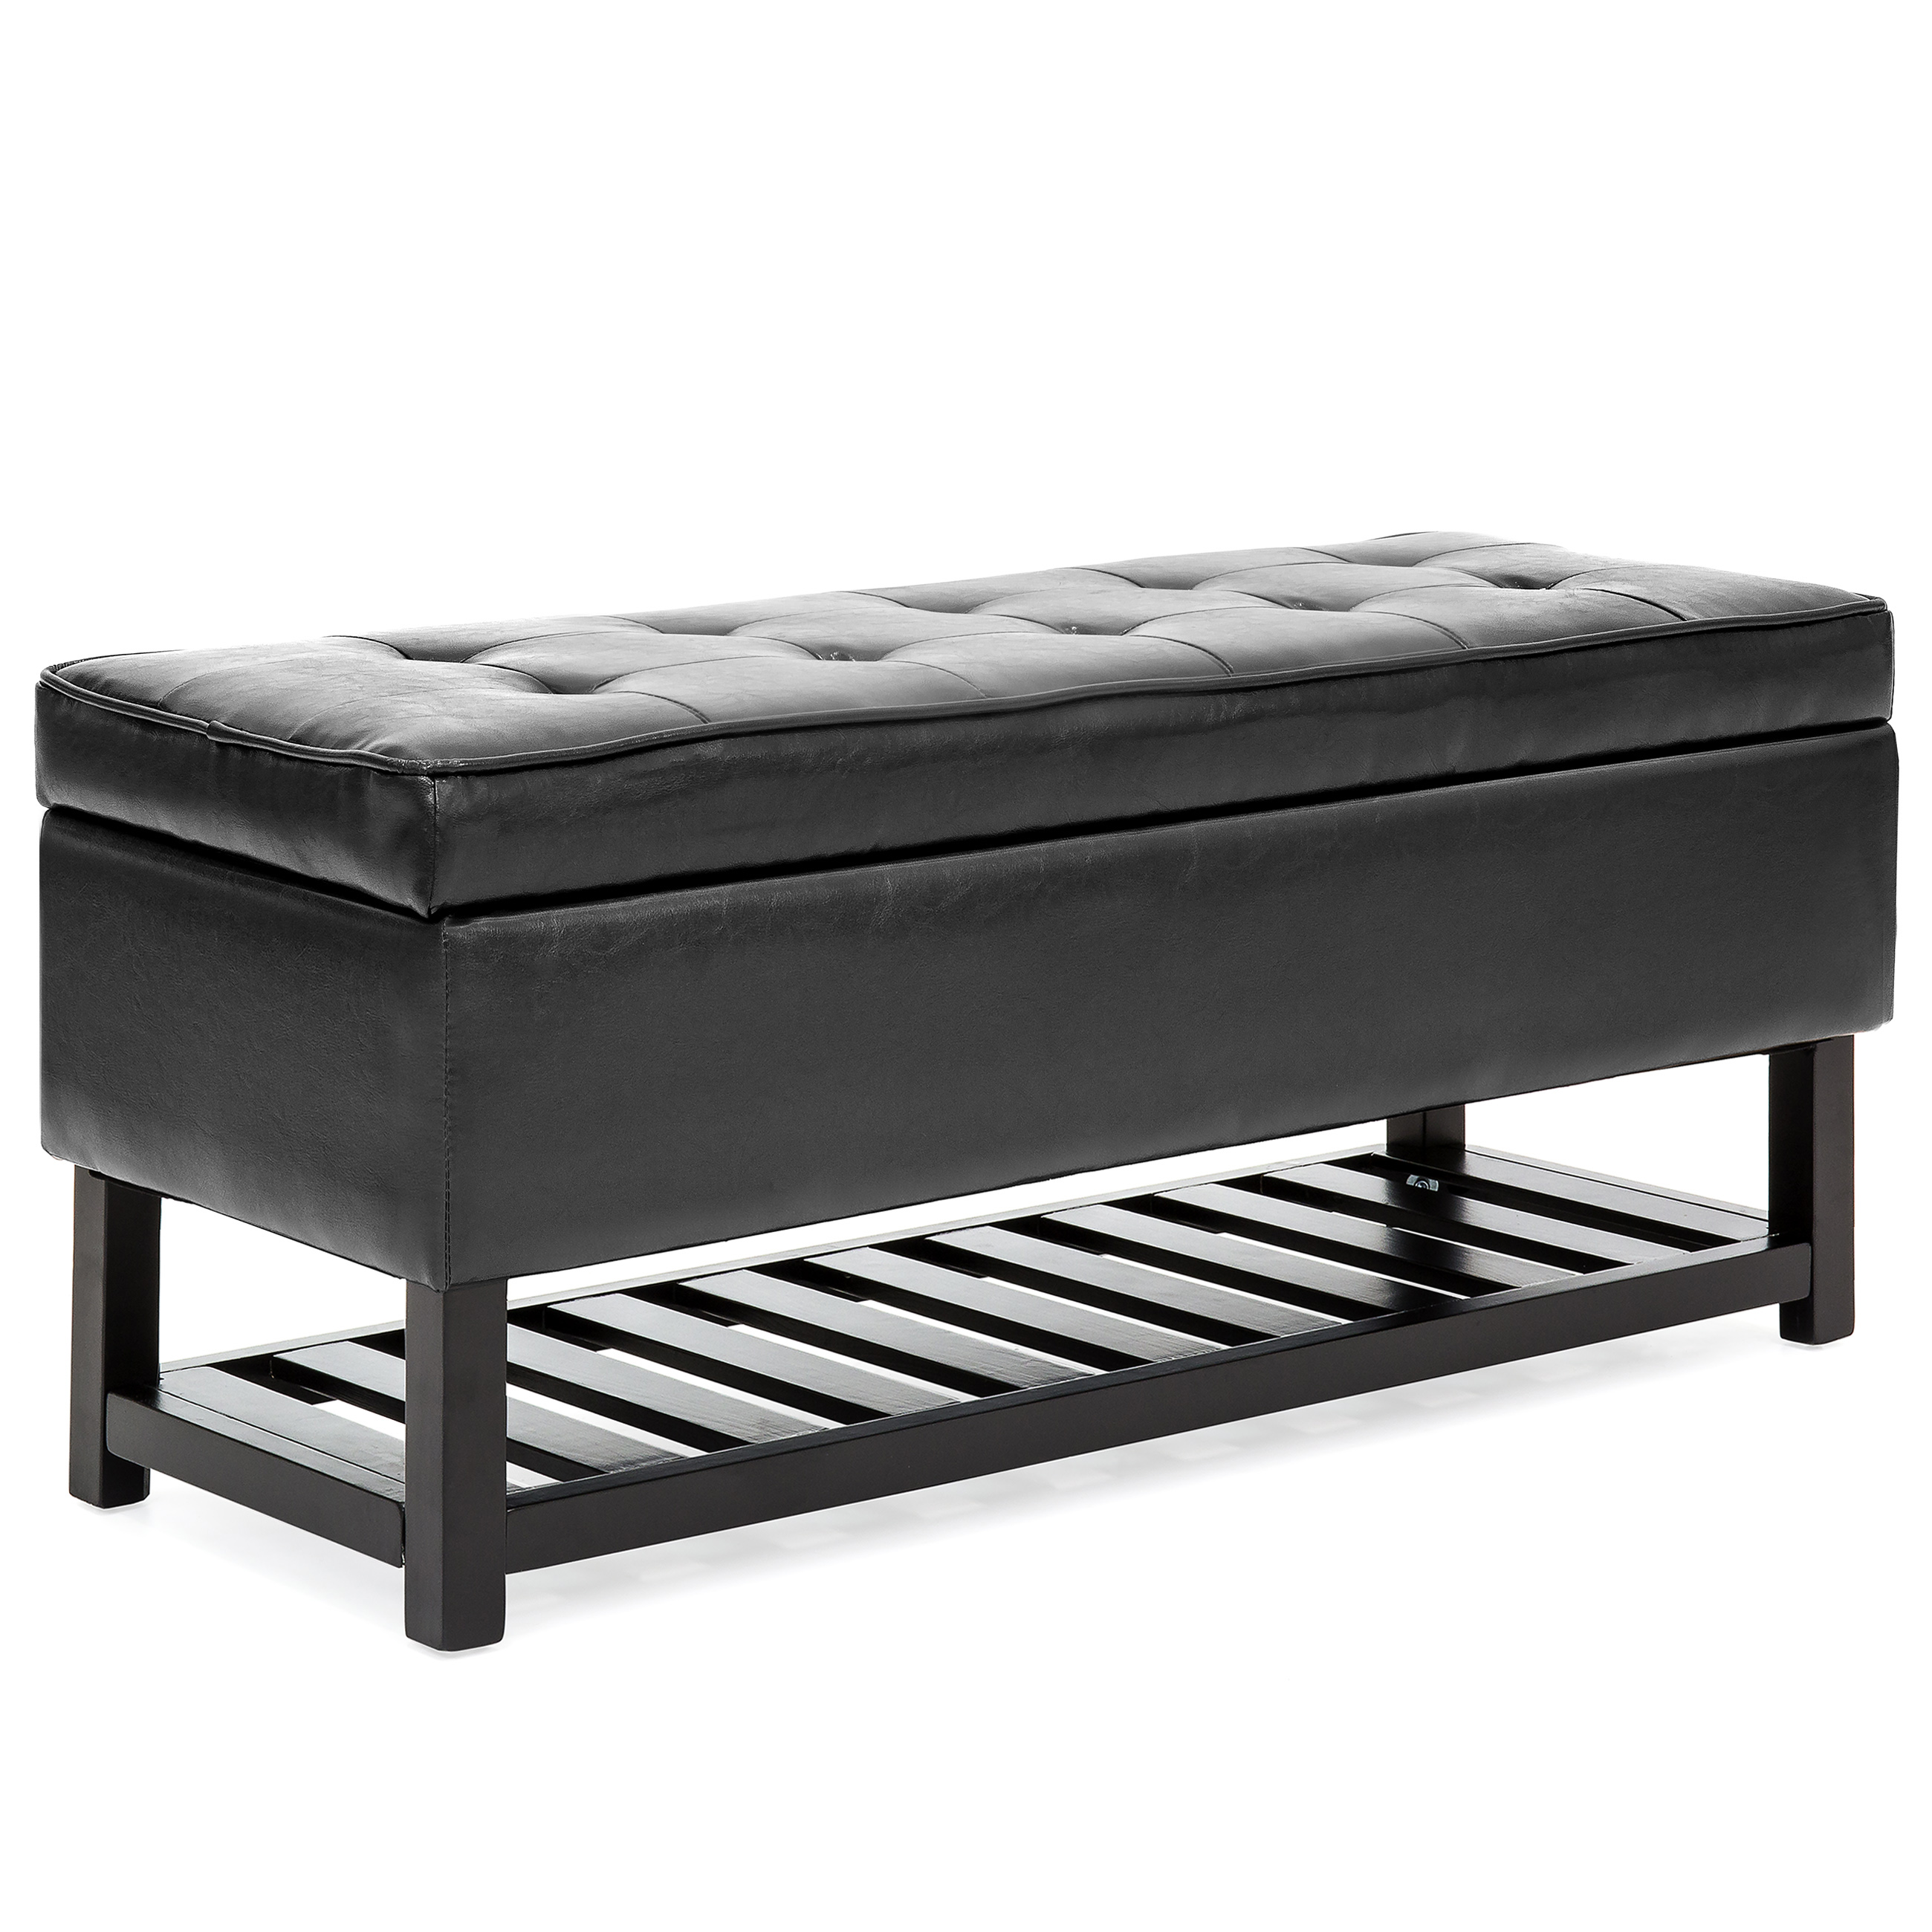 Black Bench Best Choice Products Tufted Faux Leather Storage Ottoman Stool Seat Bench W Safety Hinges Open Bottom Shelf For Shoe Rack Entryway Living Room